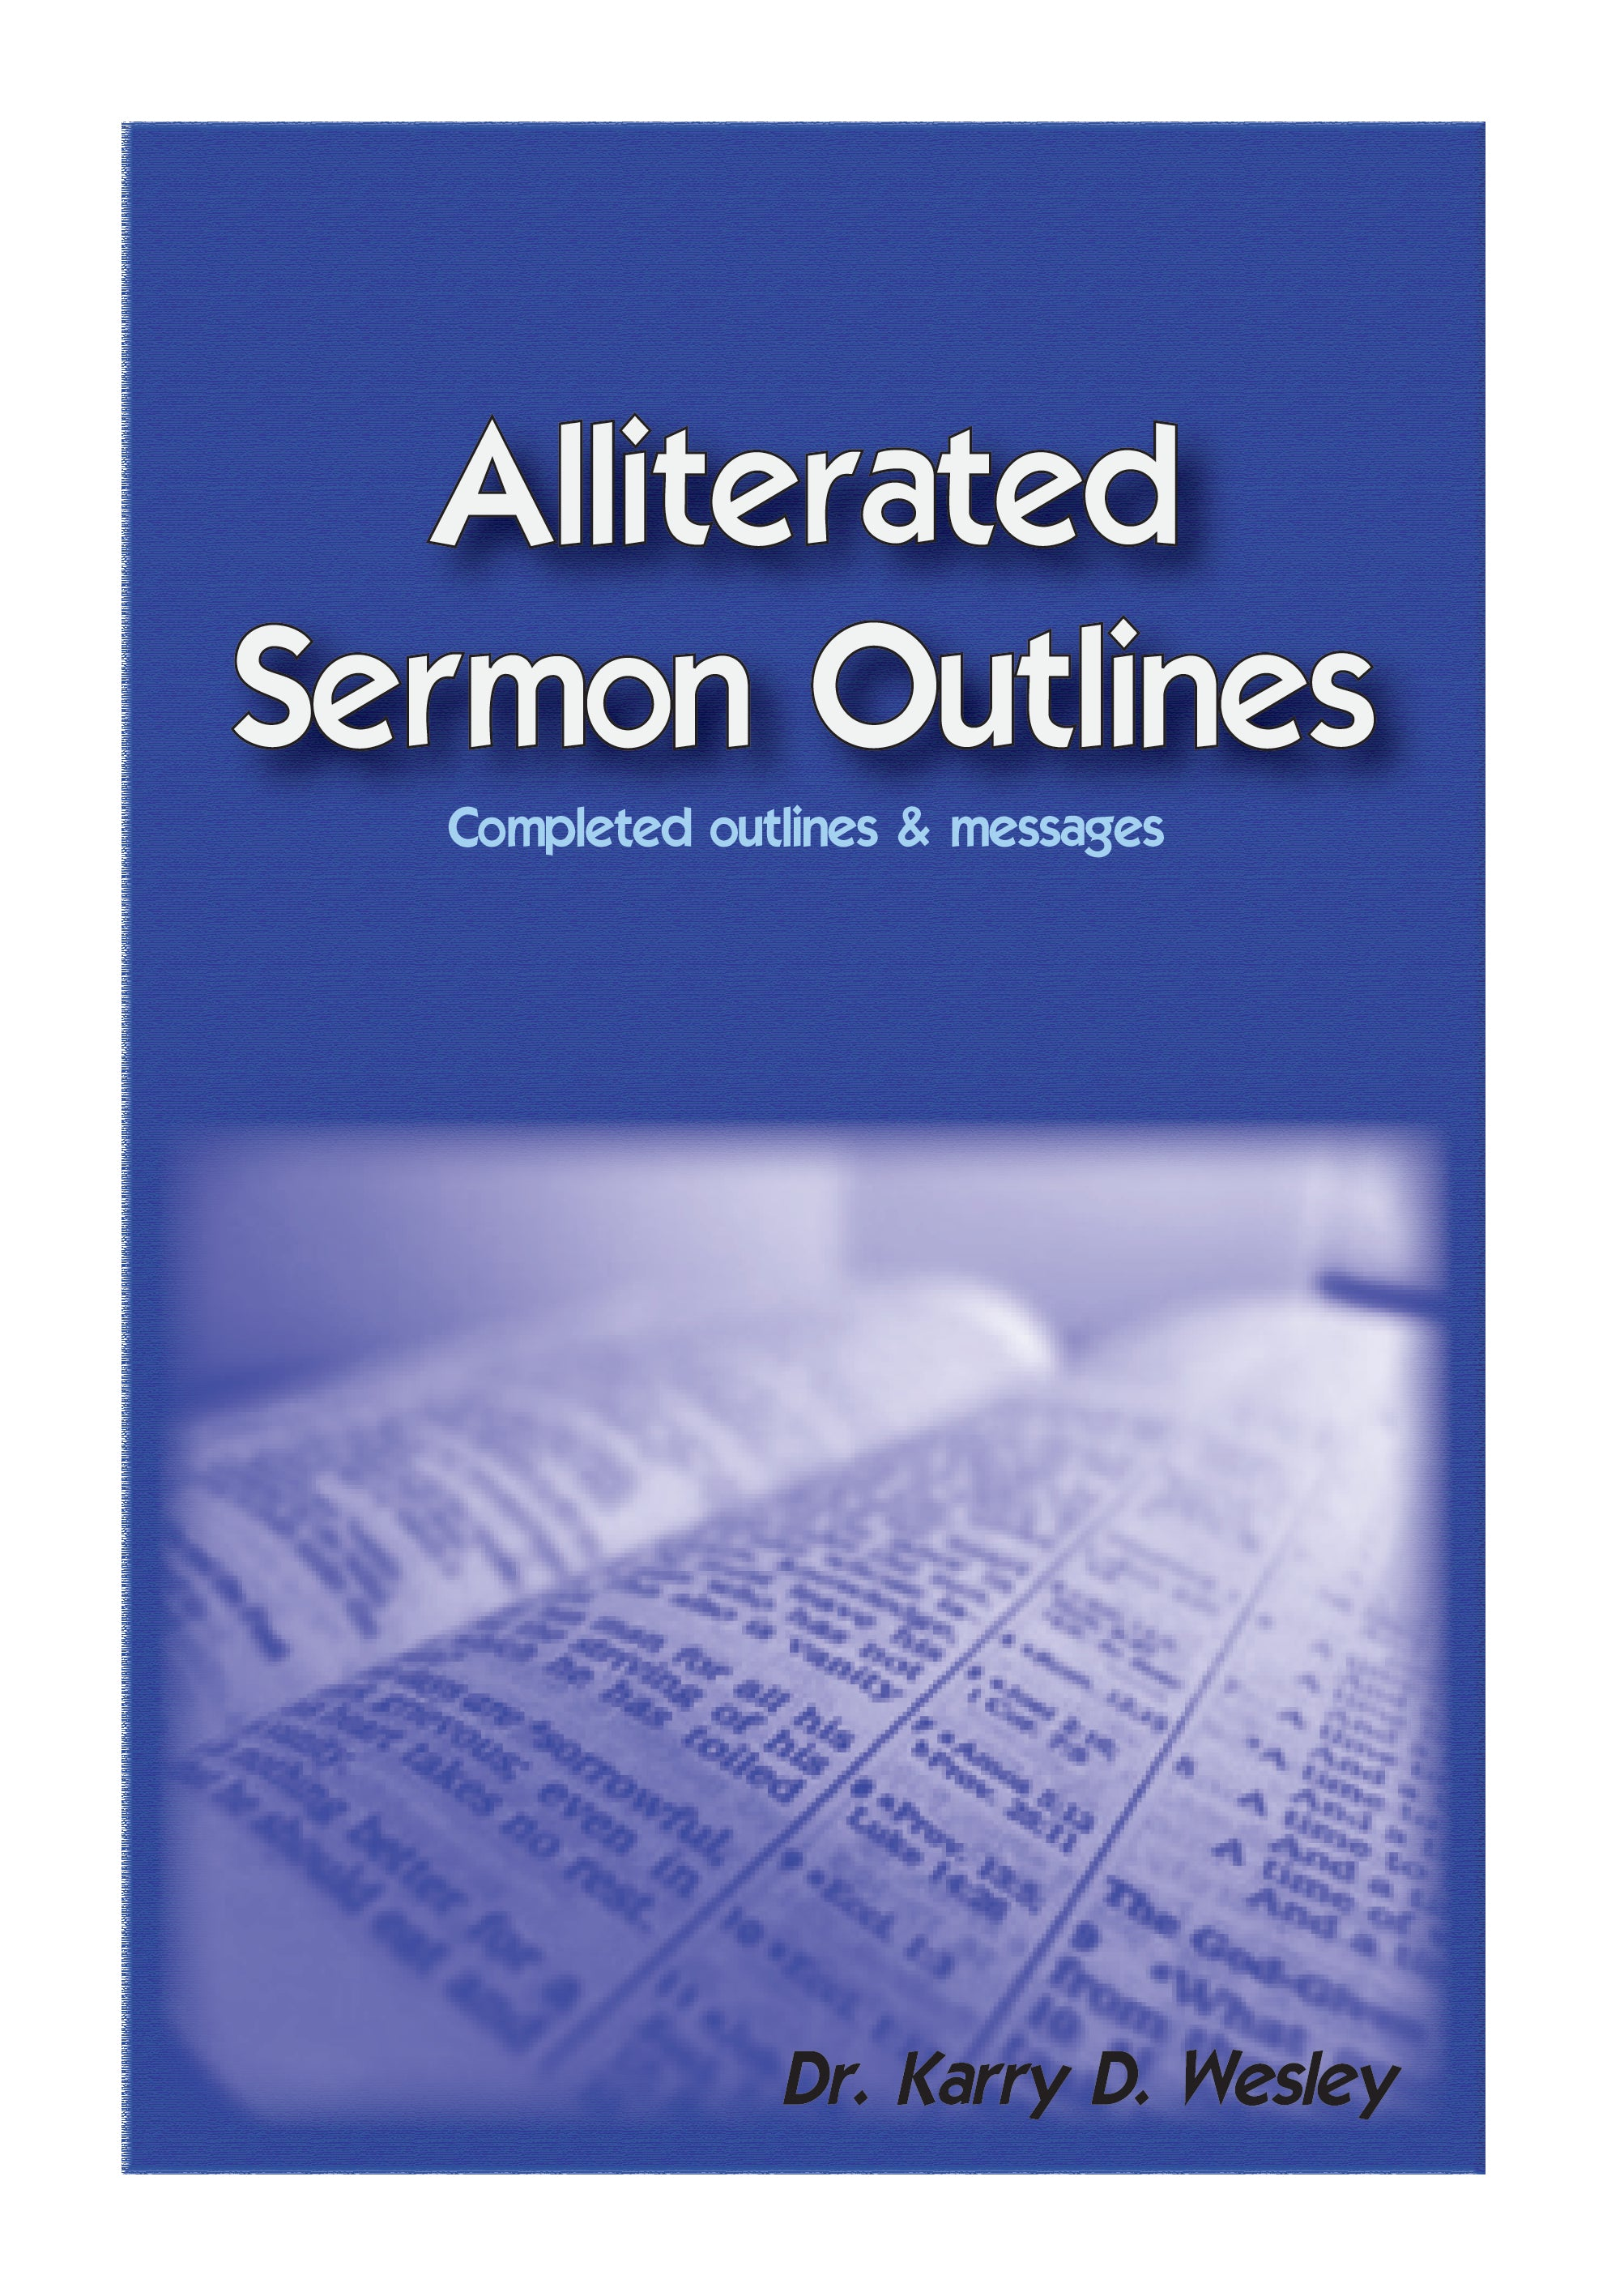 Alliterated Sermons - Volume 3